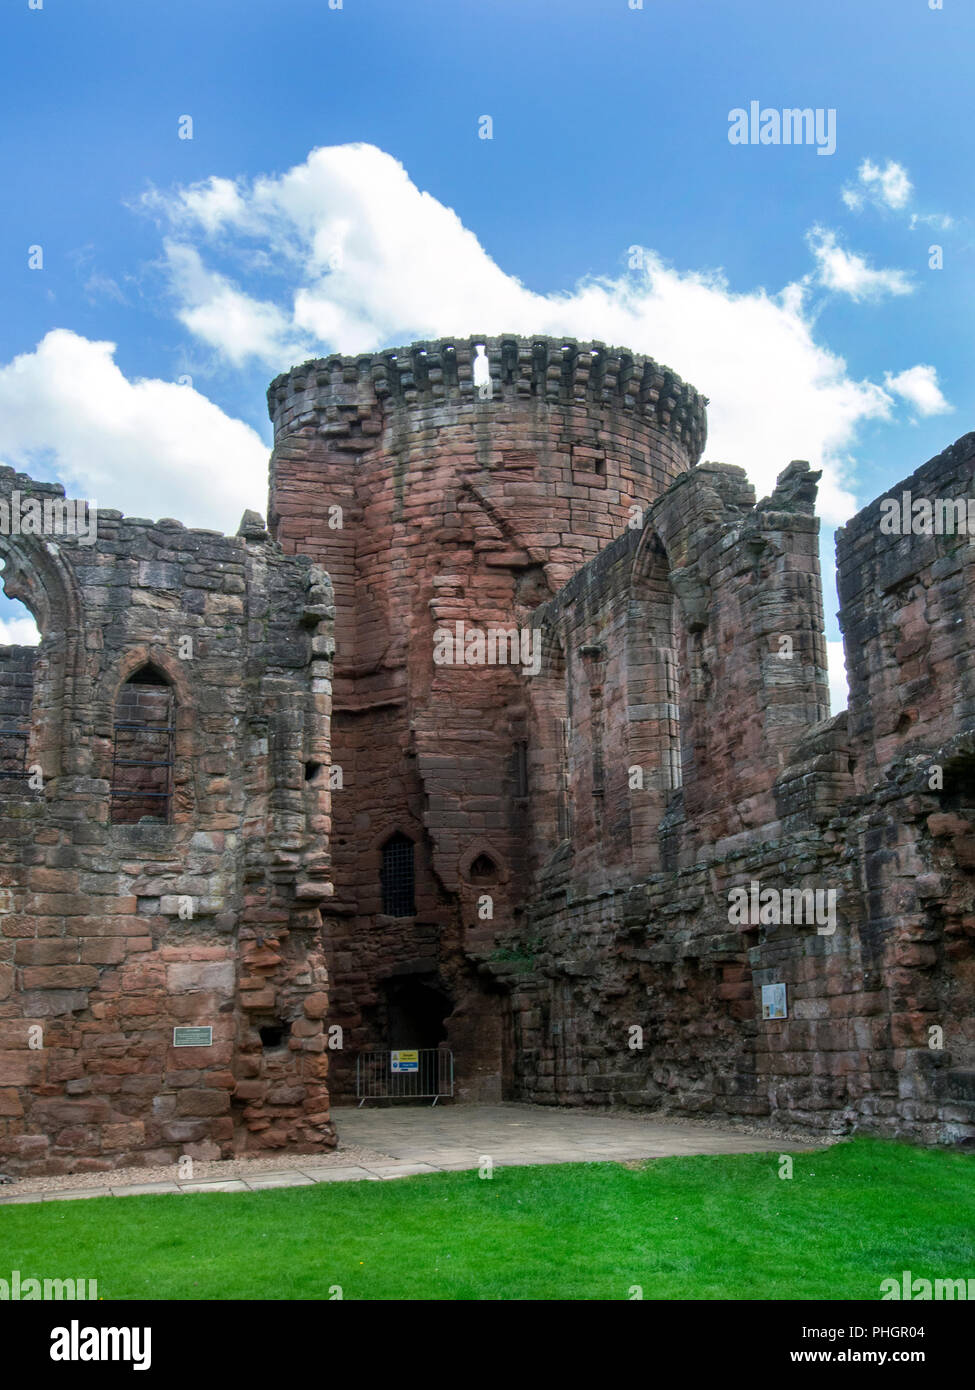 SOUTH LANARKSHIRE, SCOTLAND- AUGUST 31st 2018: The side of Bothwell Castles main hall and chapel. - Stock Image